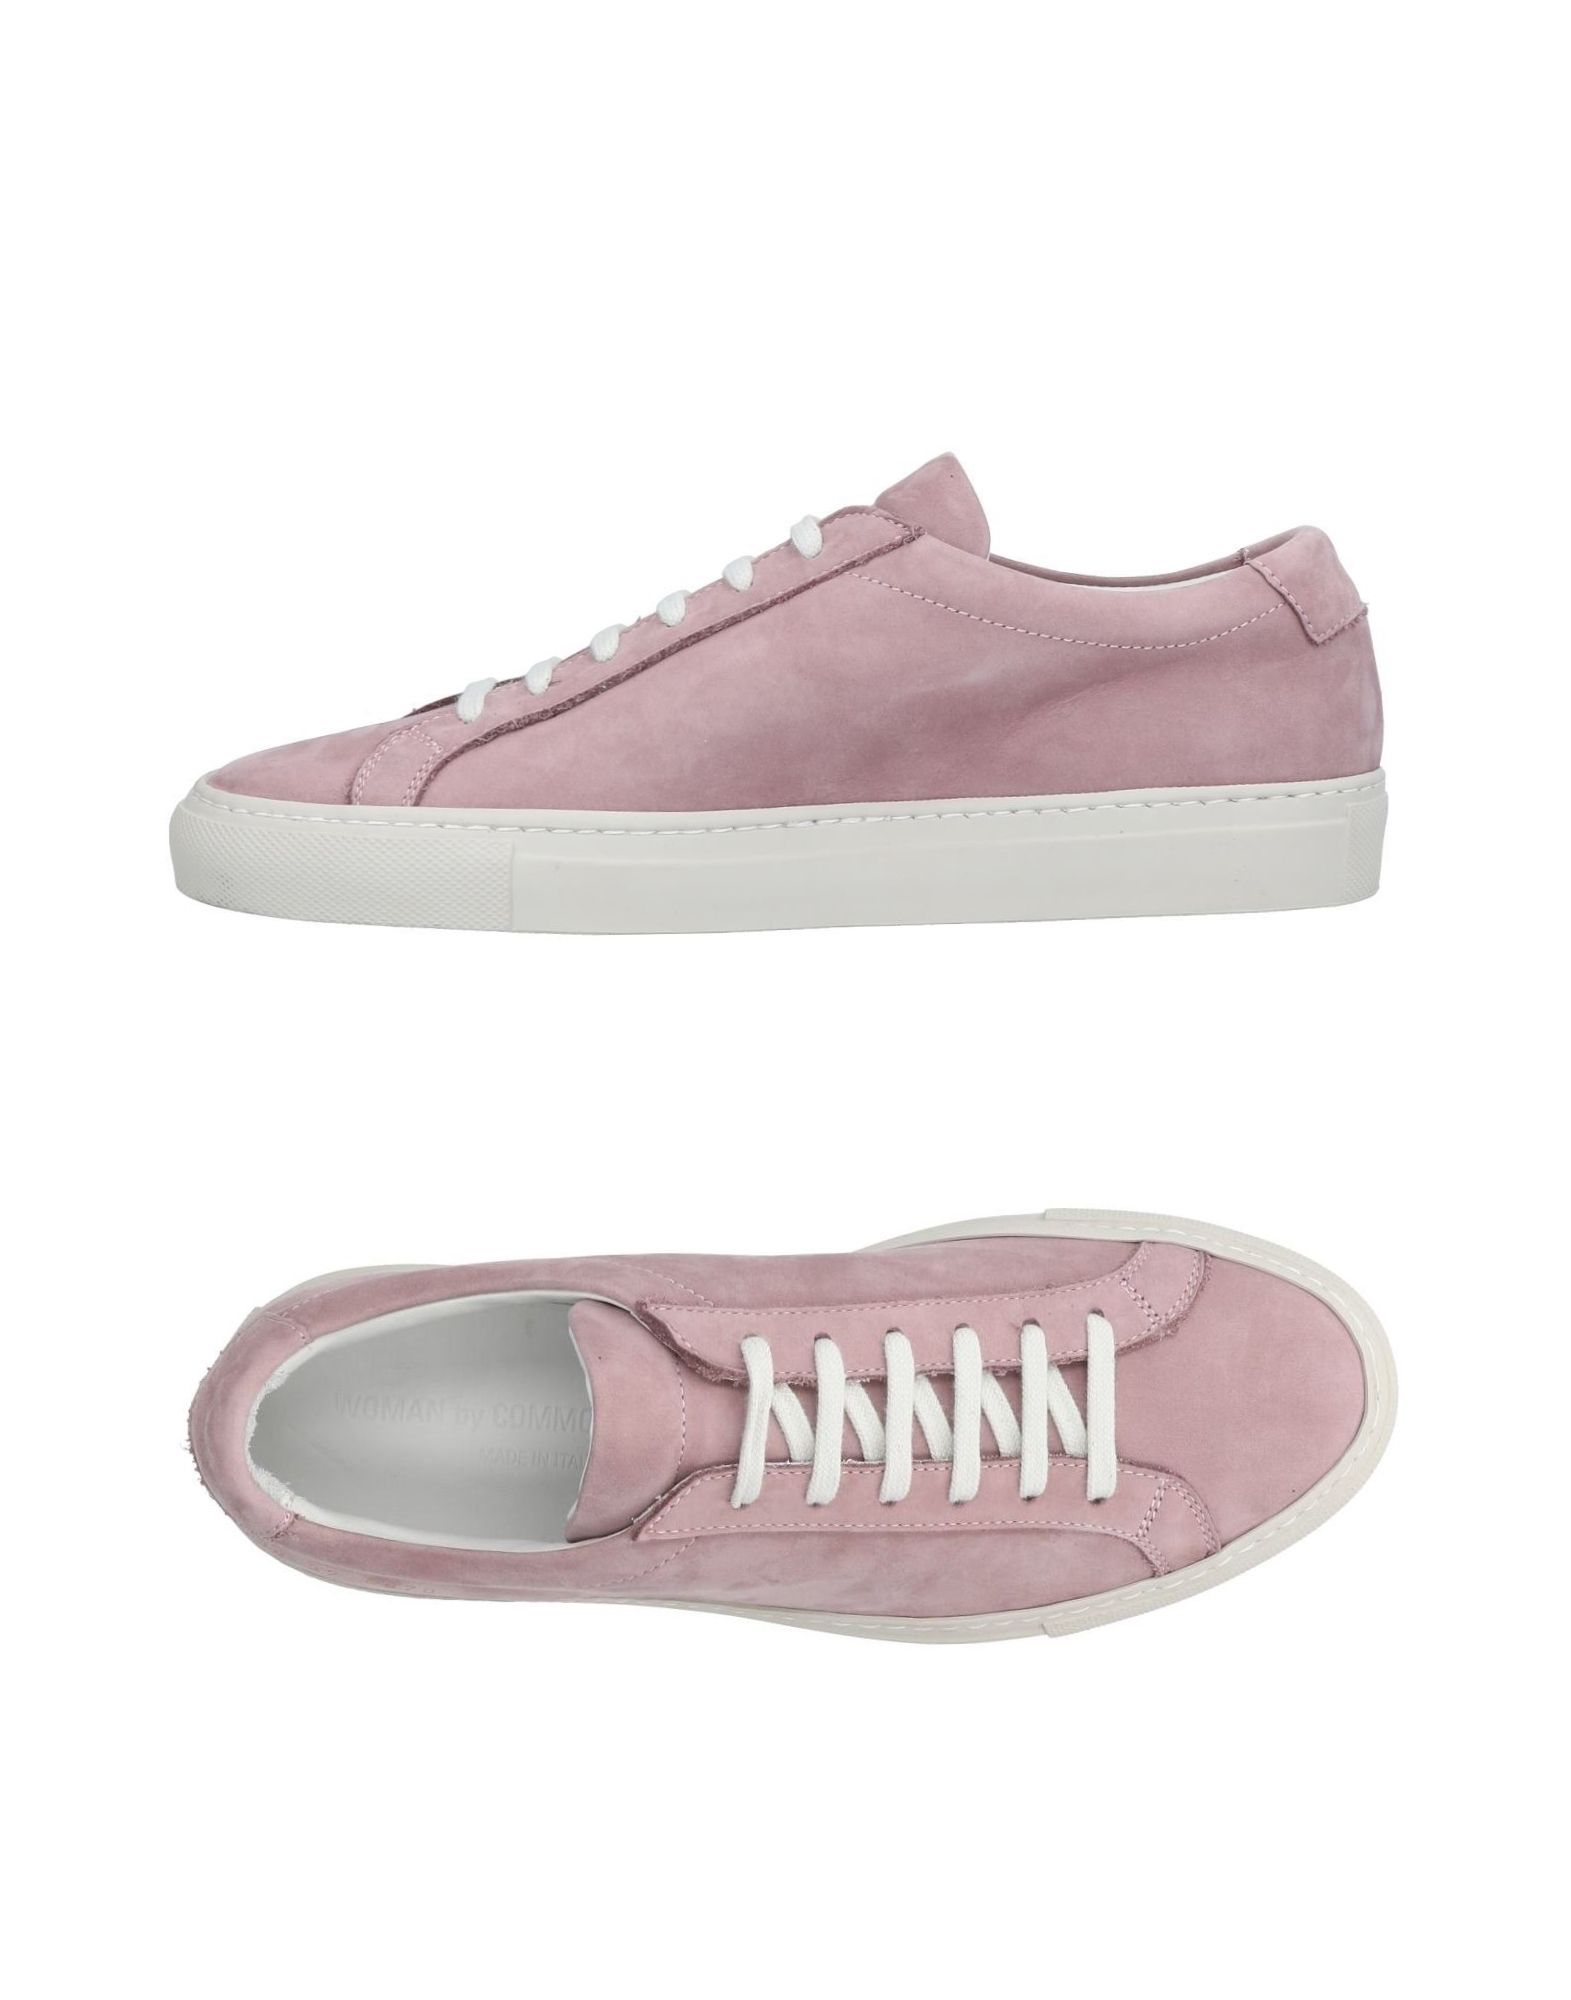 Sneakers Woman By Common Projects Donna - Acquista online su